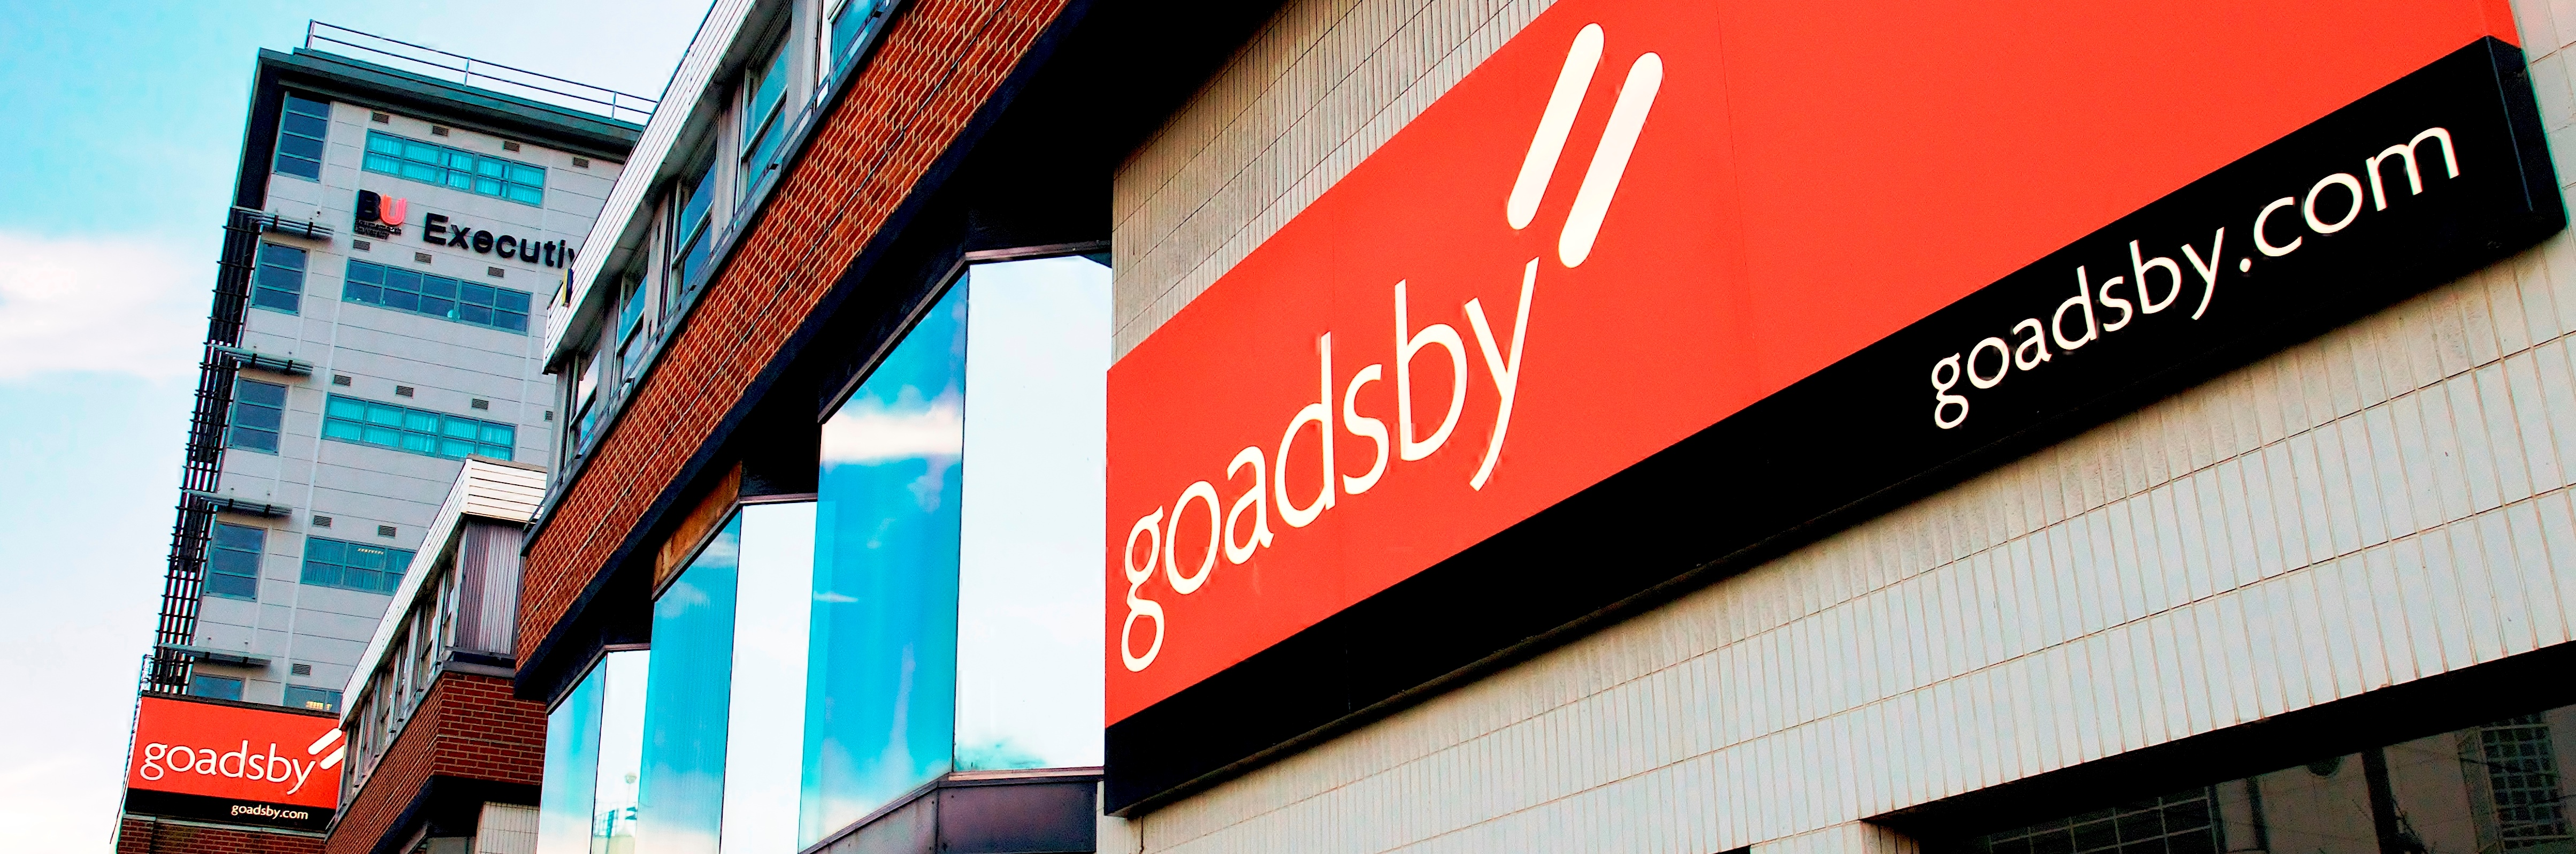 Goadsby head office bournemouth